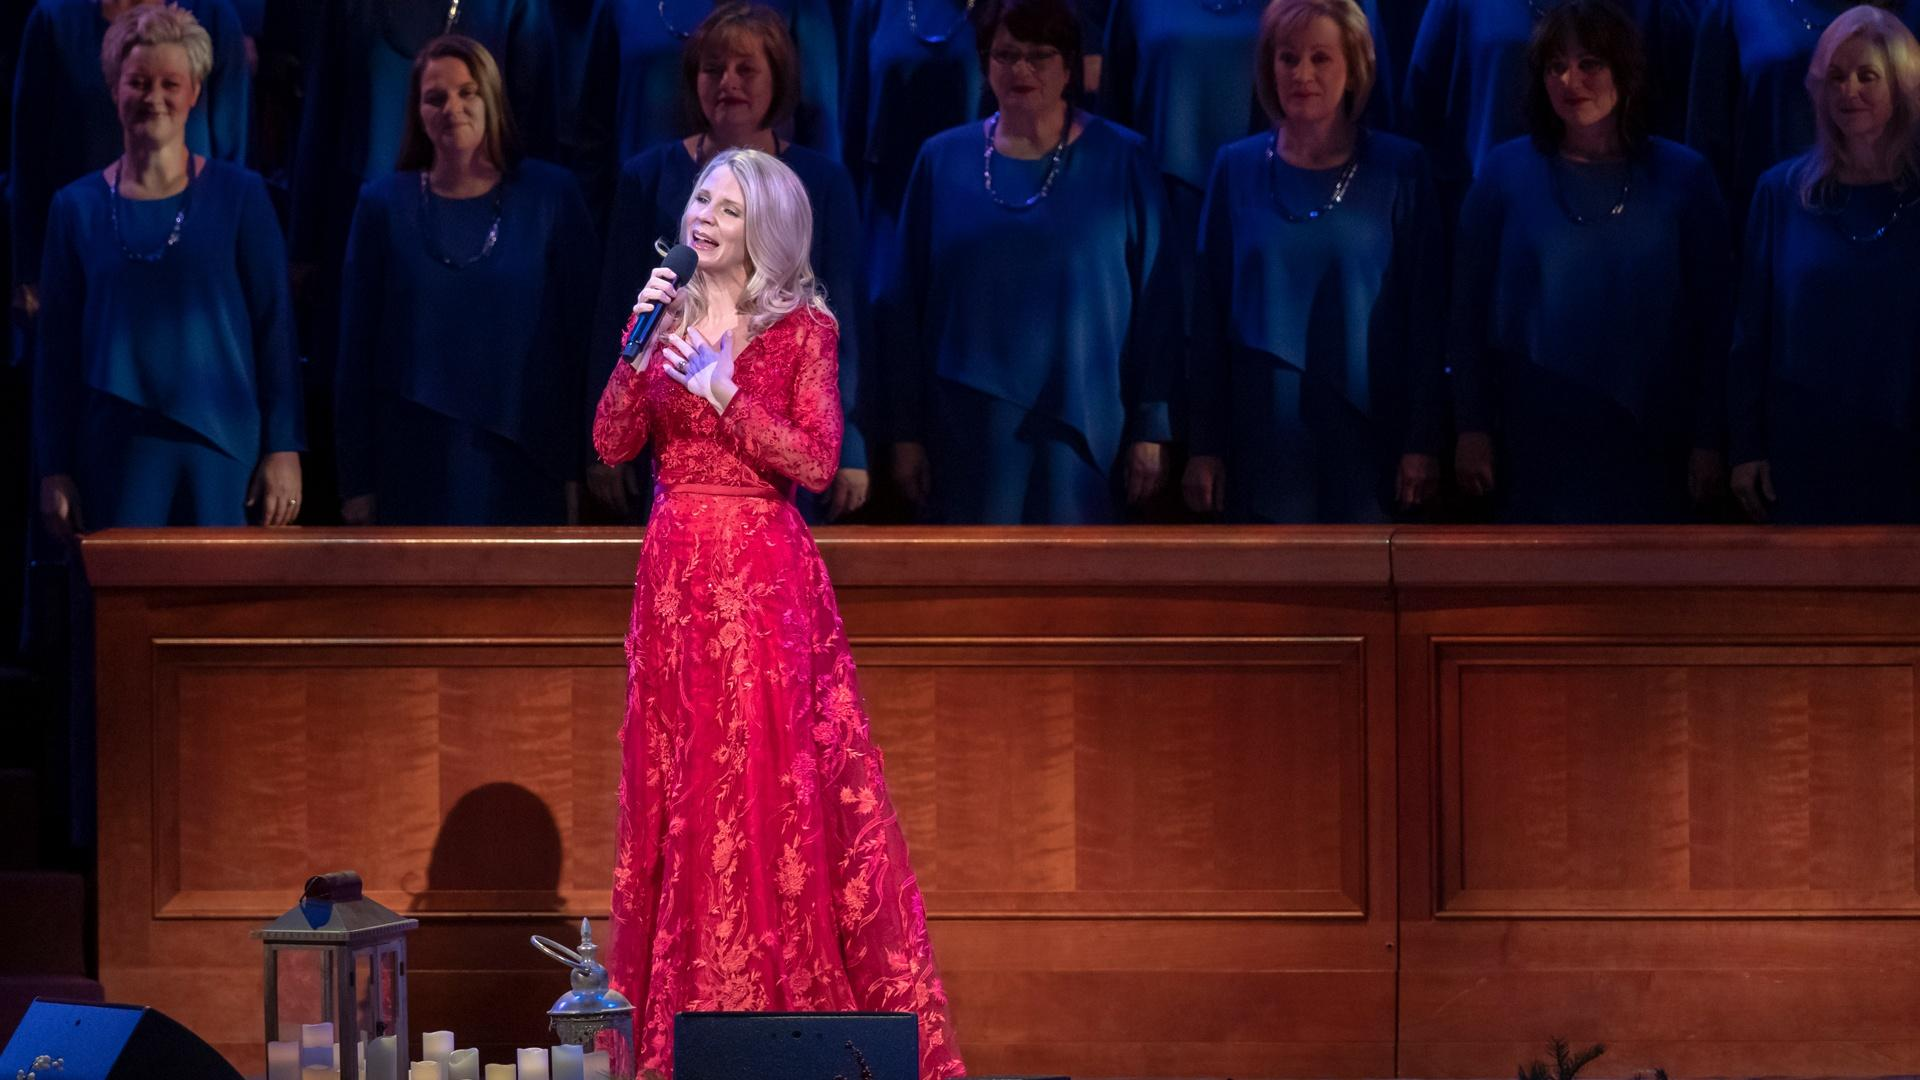 Kristin Chenoweth sings in front of the organist and musicians holding jingle bells.